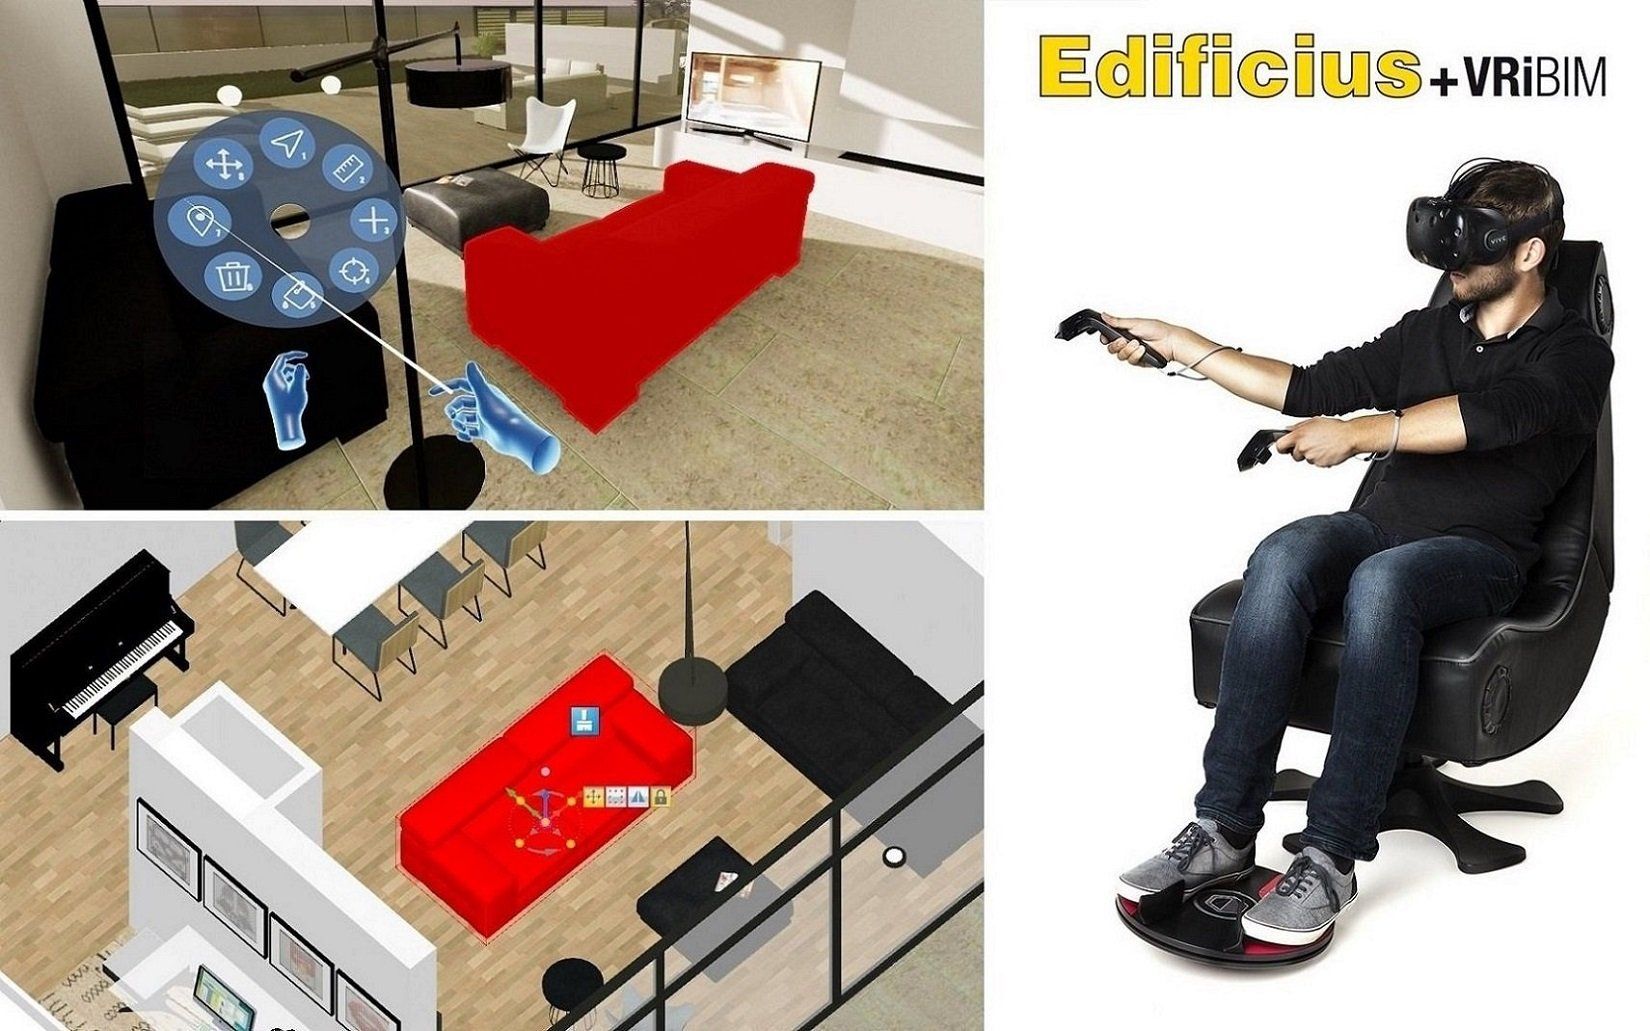 Virtual tour of your BIM models in immersive VR directly in Edificius | VRiBIM supporting 3DRudder